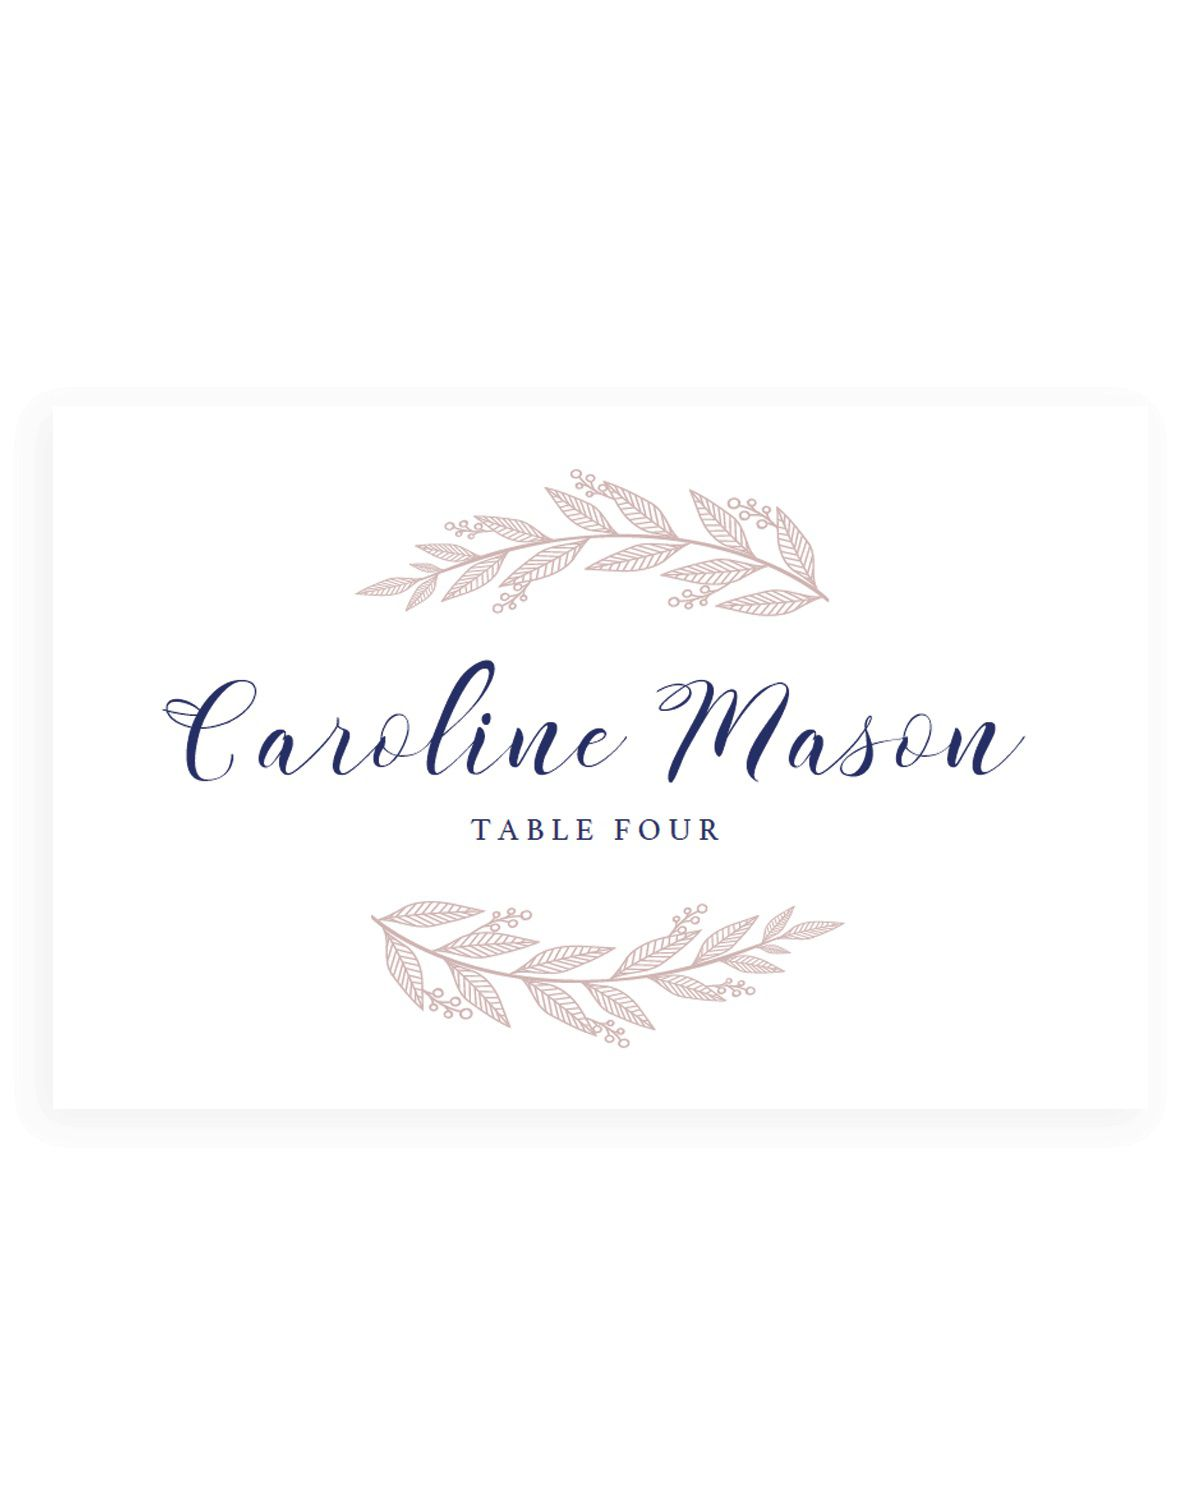 005 Fantastic Wedding Name Card Template Example  Free Download Design Sticker FormatFull